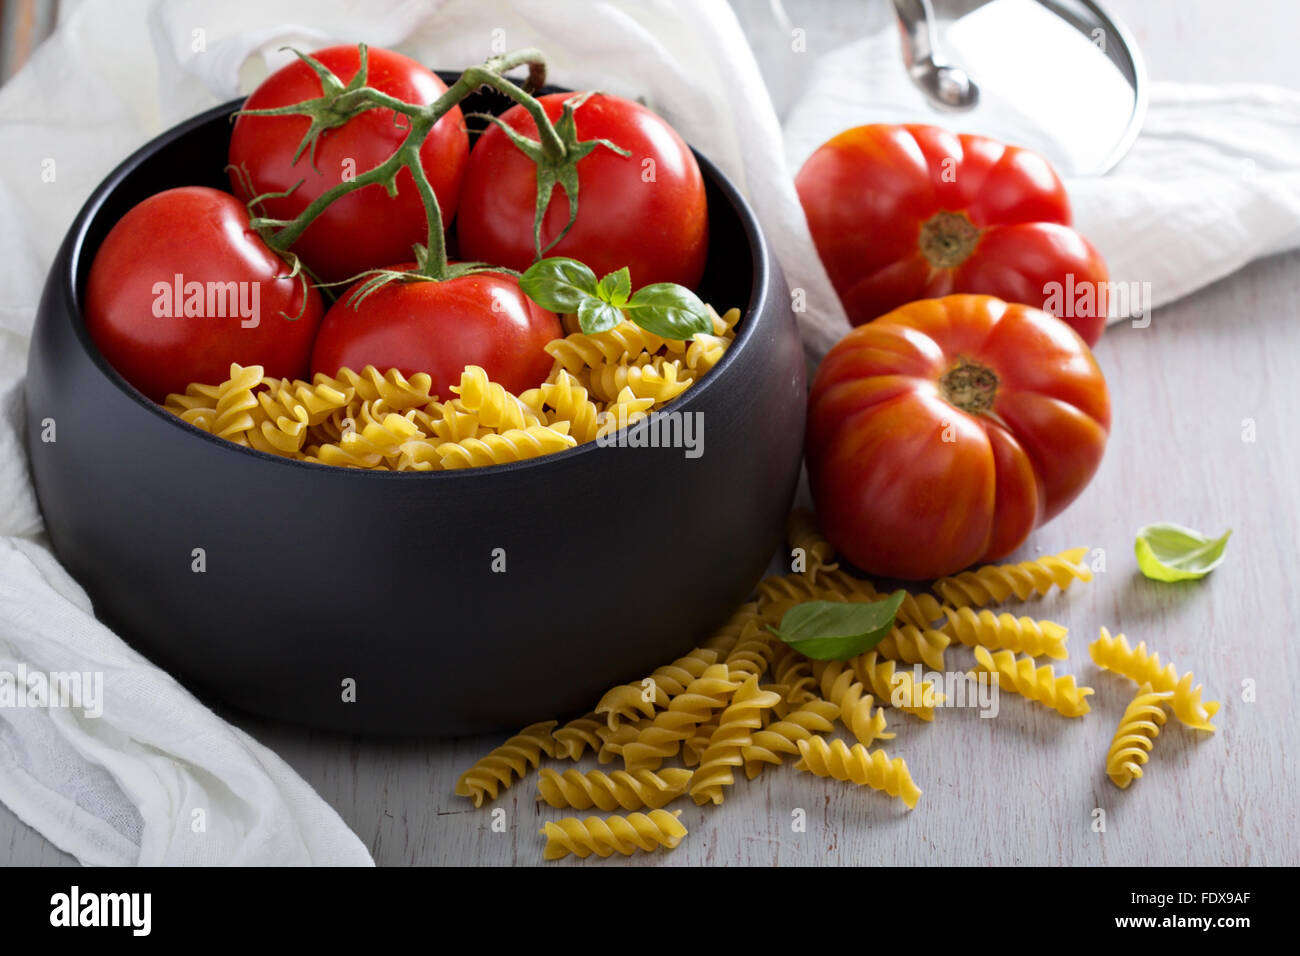 Ingredients for tomato soup with fusilli pasta - Stock Image